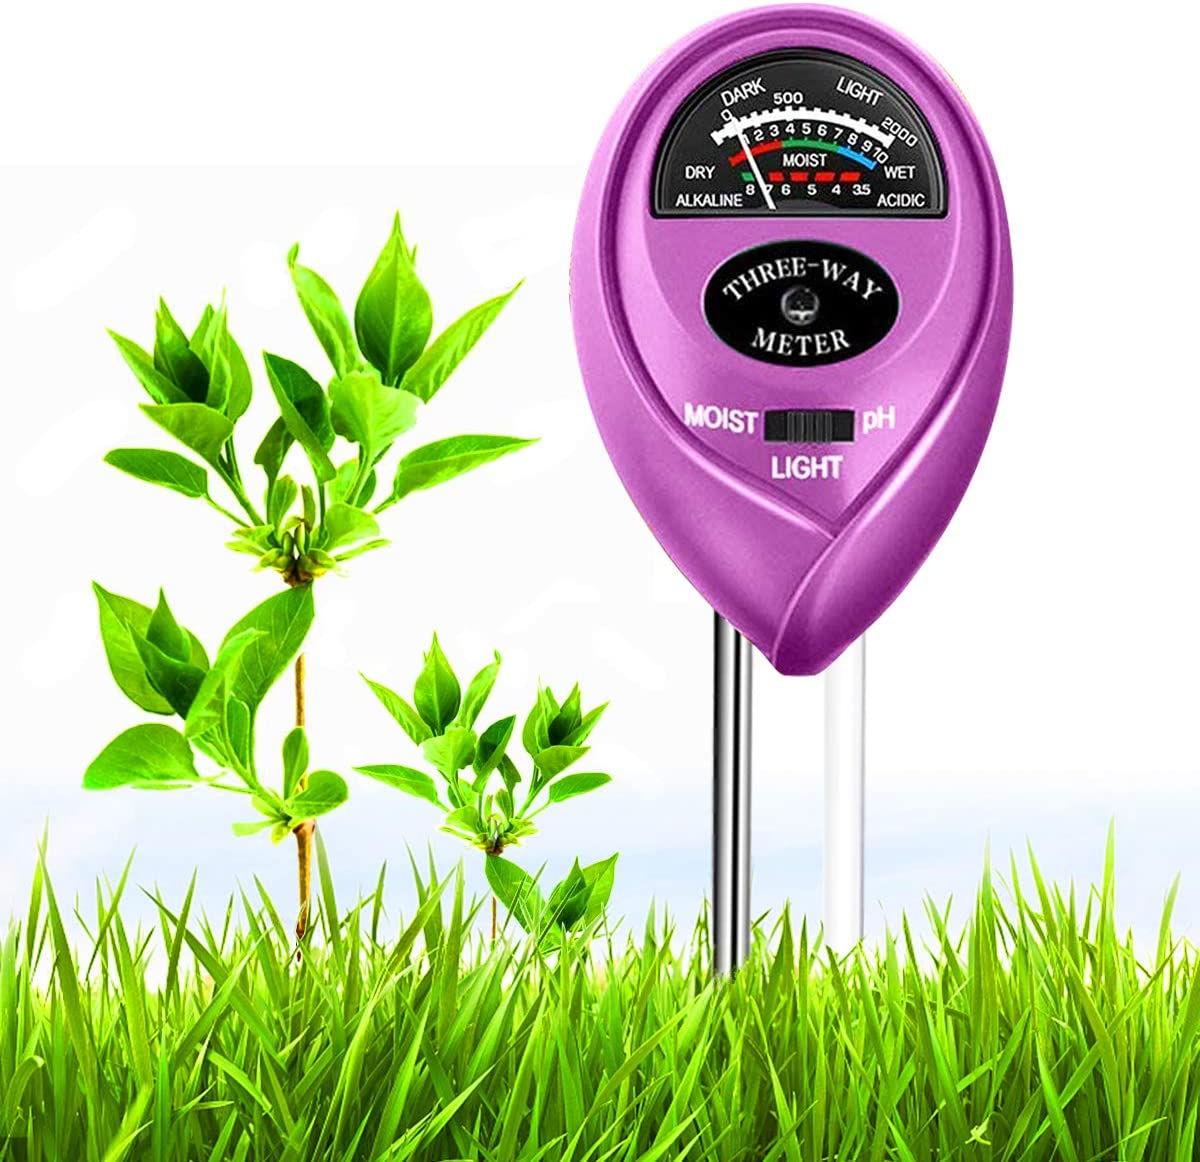 Soil Moisture Sensor Meter, 3-in-1 Soil pH Meter Tool Kits with PH/Light/Moisture Tester for Plant Care, Digital Plant Thermometer, Water Monitor for Garden, Farm, Indoor & Outdoor (No Battery Needed)